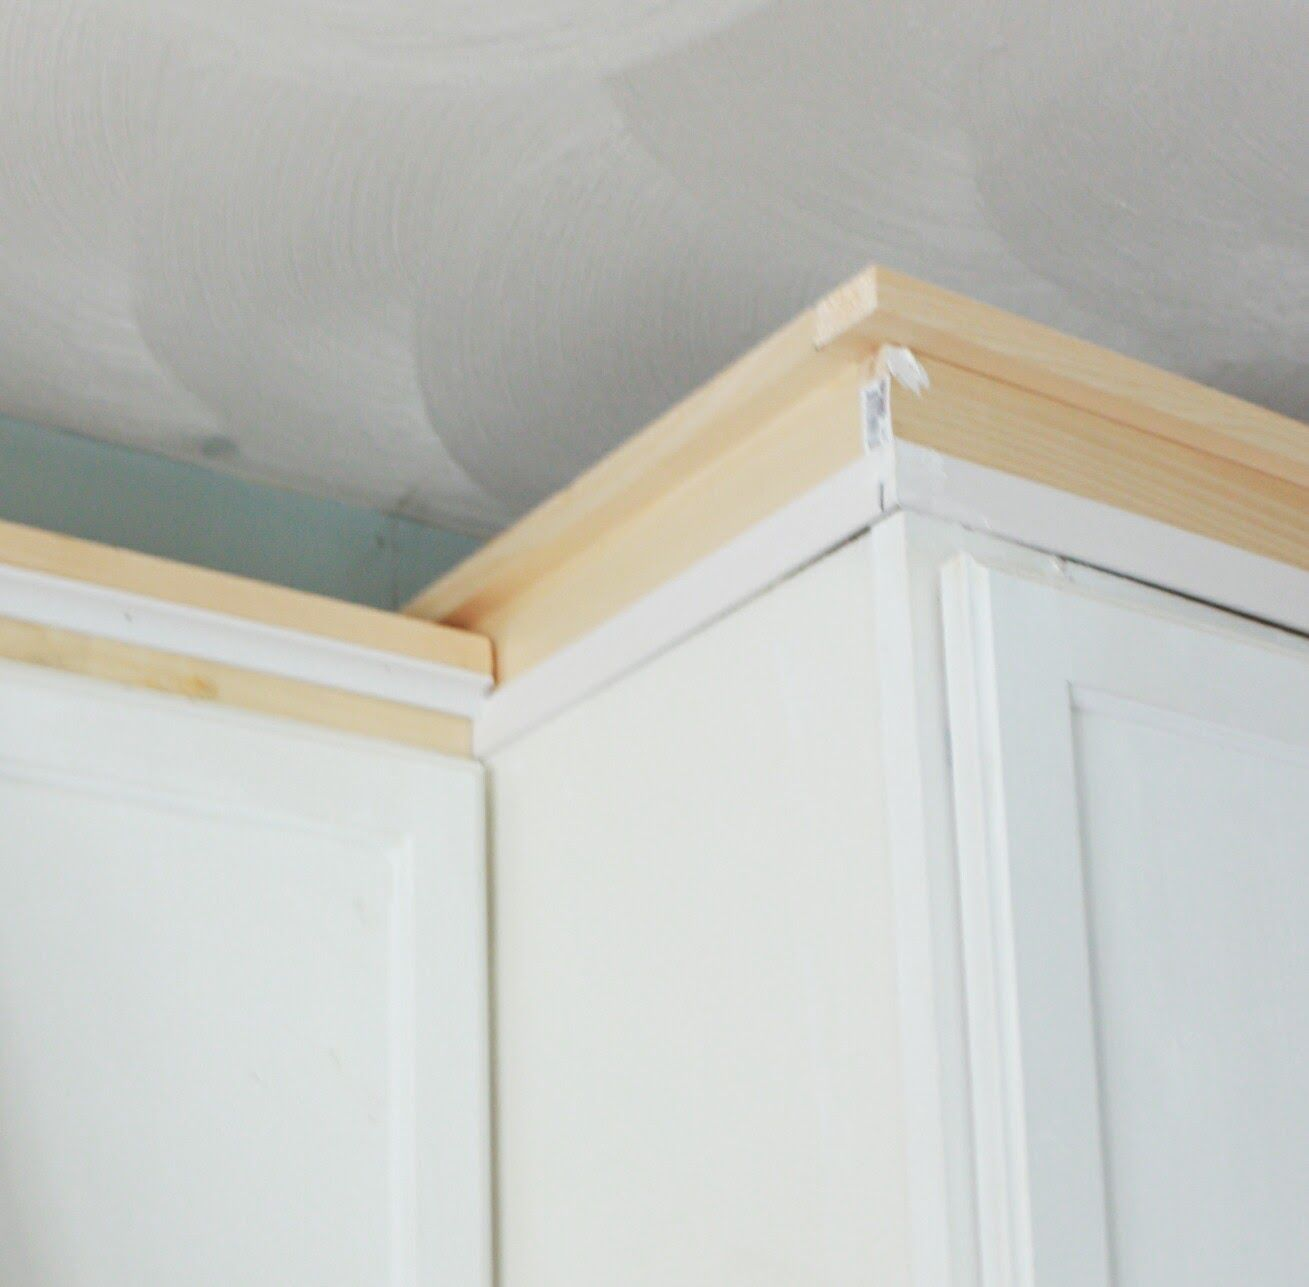 My Diy Kitchen Cabinet Crown Molding How To Fake The Look Without The Fuss Made By Carli Kitchen Cabinet Crown Molding Crown Moulding Kitchen Cabinets Kitchen Cabinet Molding